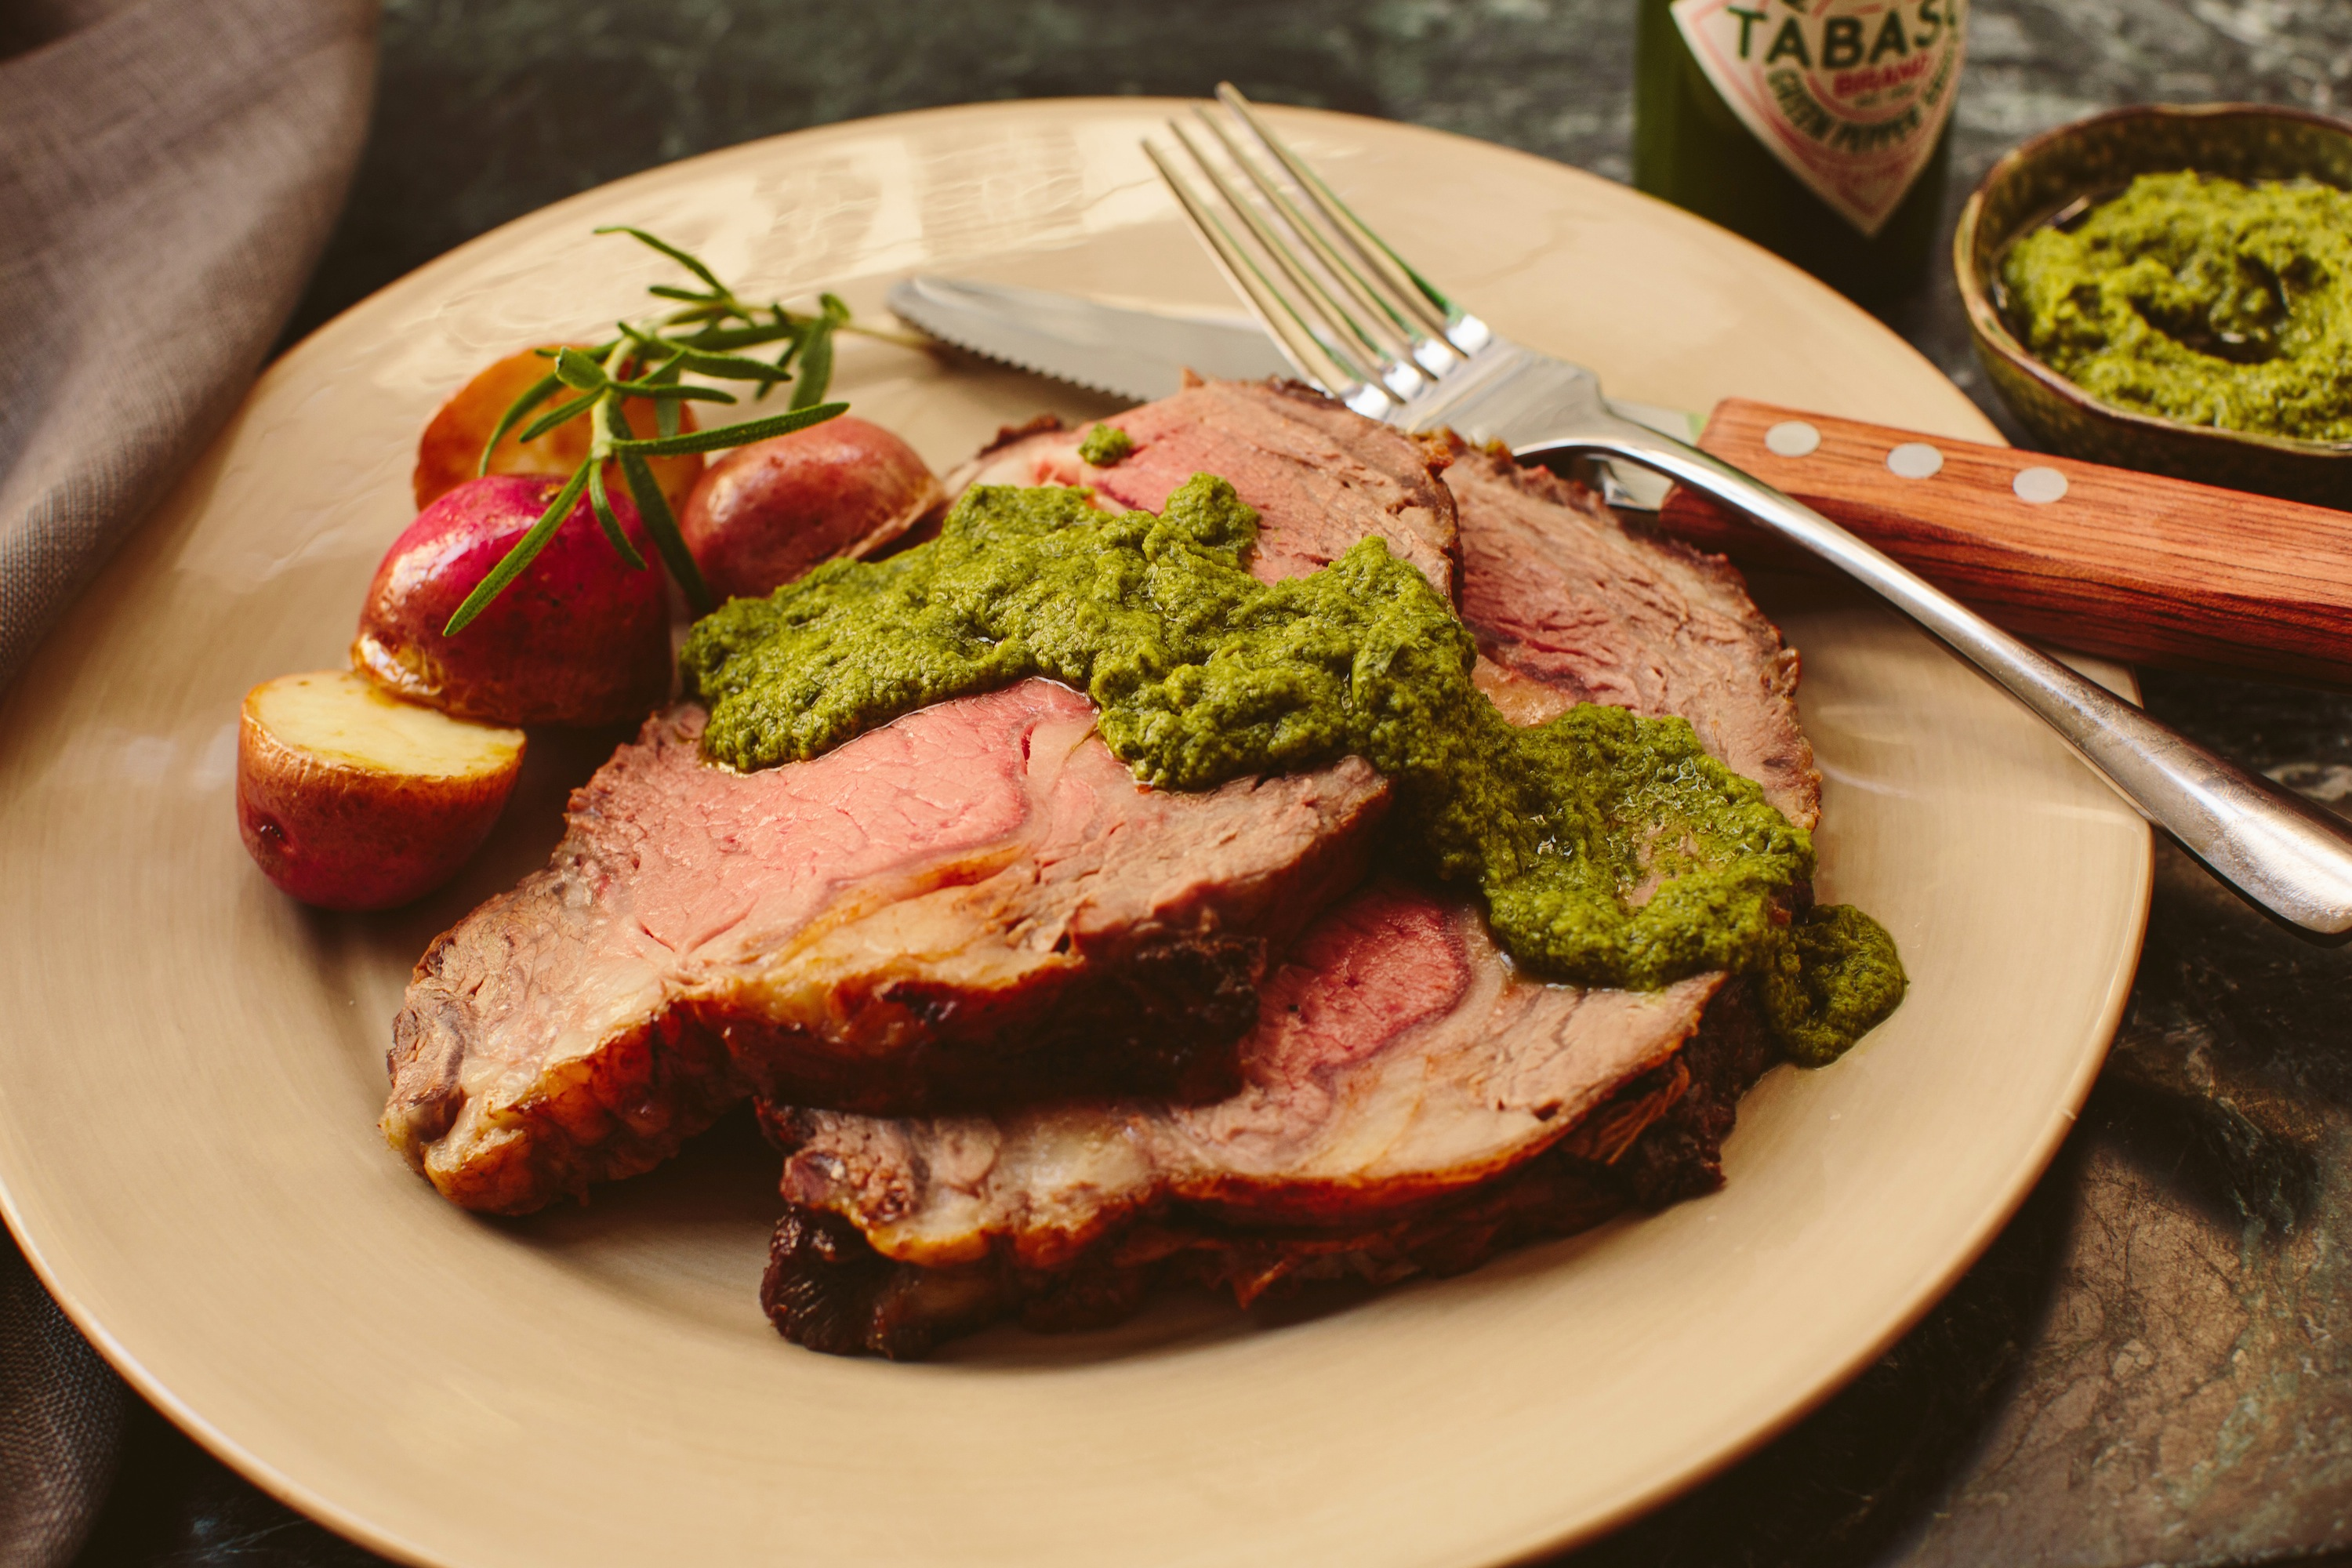 Prime Rib Roast with Salsa Verde and Red Bliss Potatoes credit: tabasco